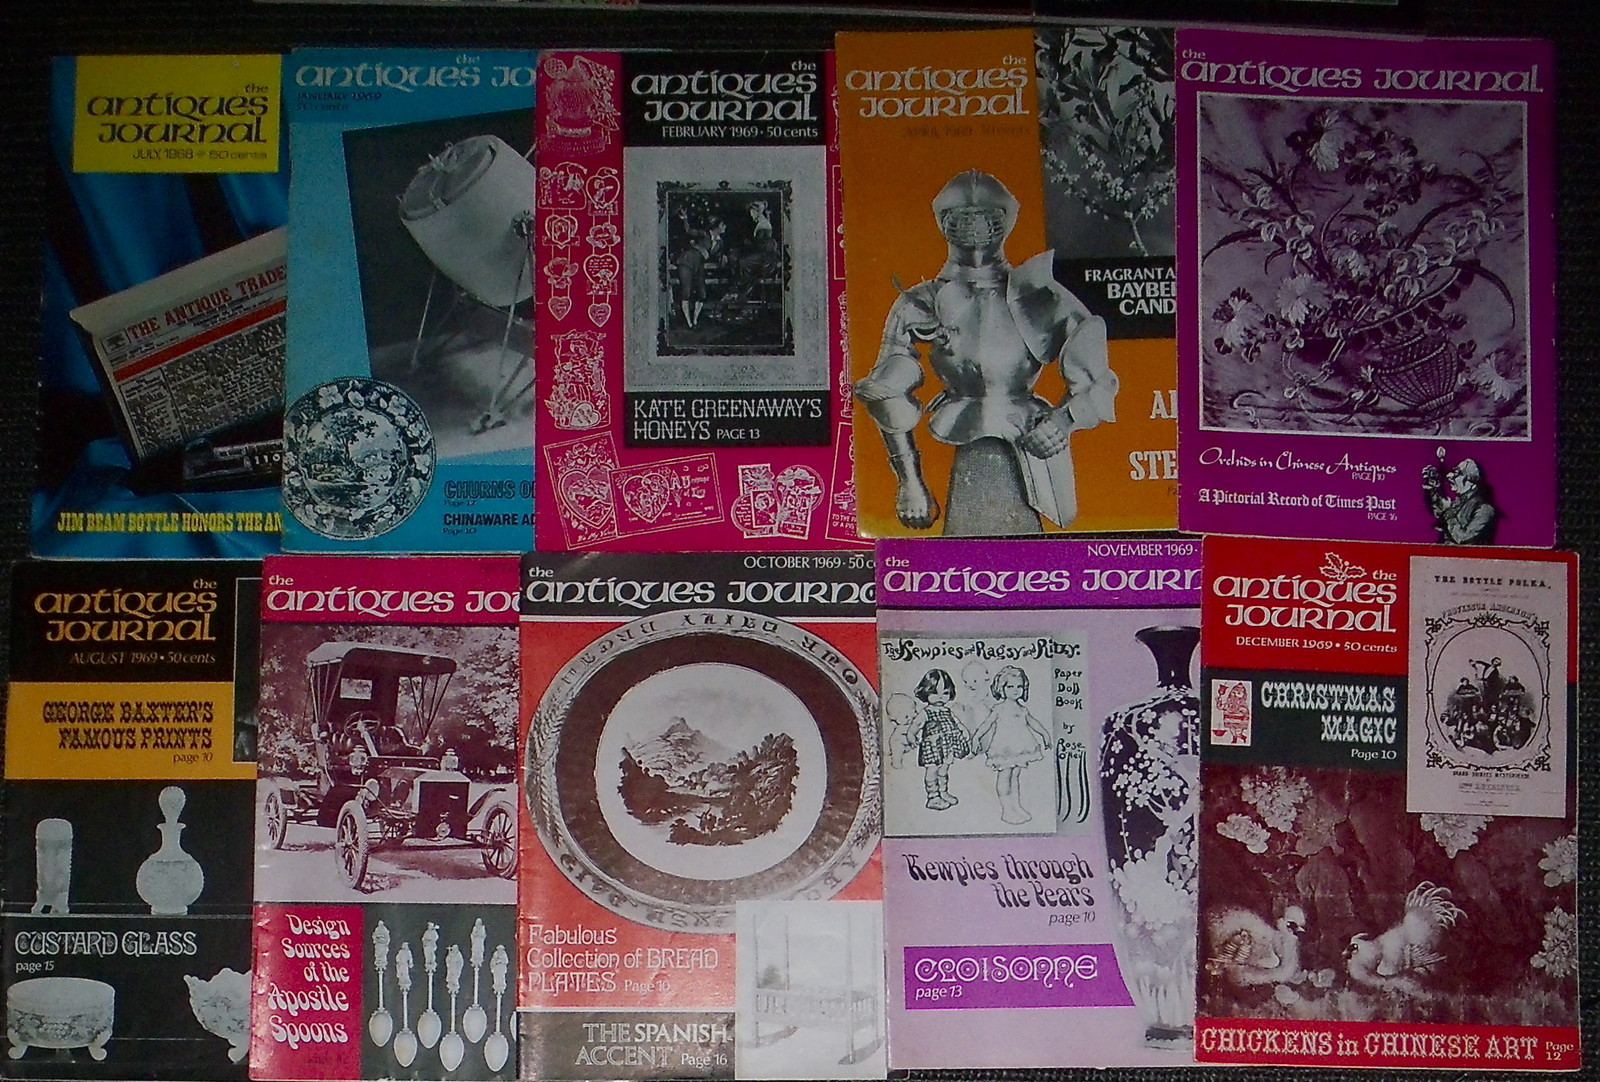 10 issues of The Antiques Journal magazine July 1968 & Dec. 1969